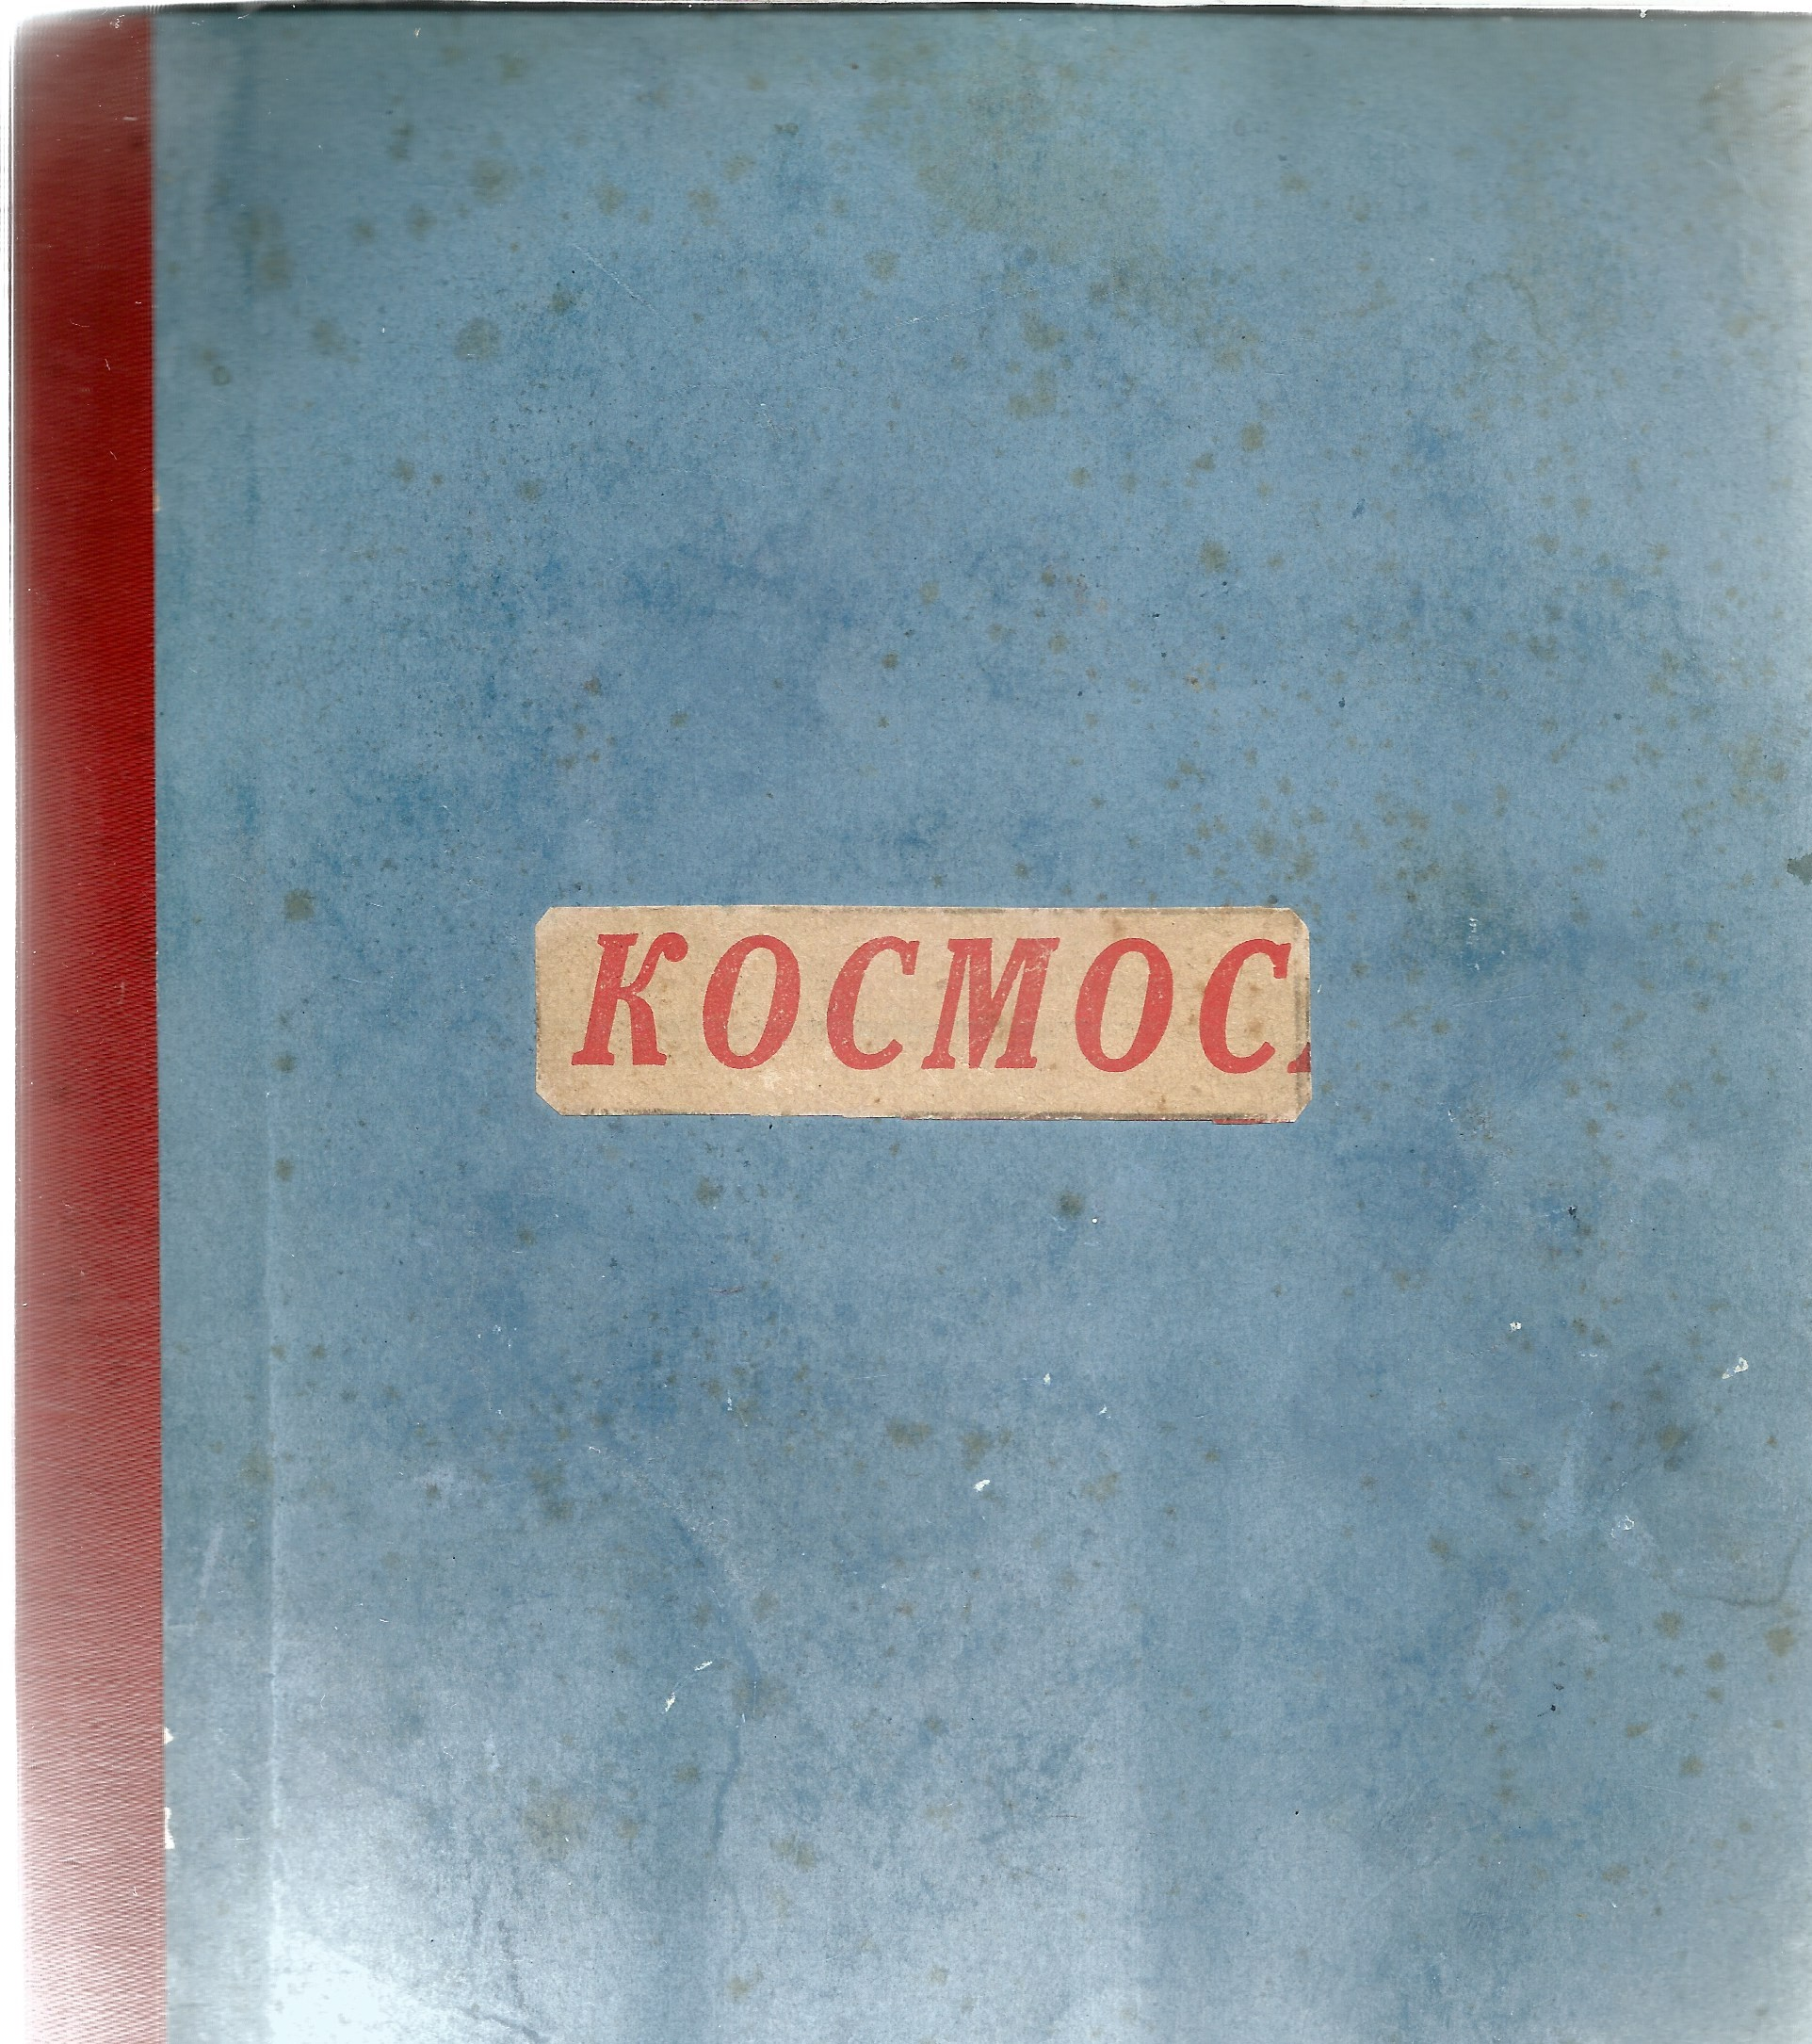 1950/60s Russian Cosmonauts multiple signed hard backed scrapbook compiled by a worker at Baikonur